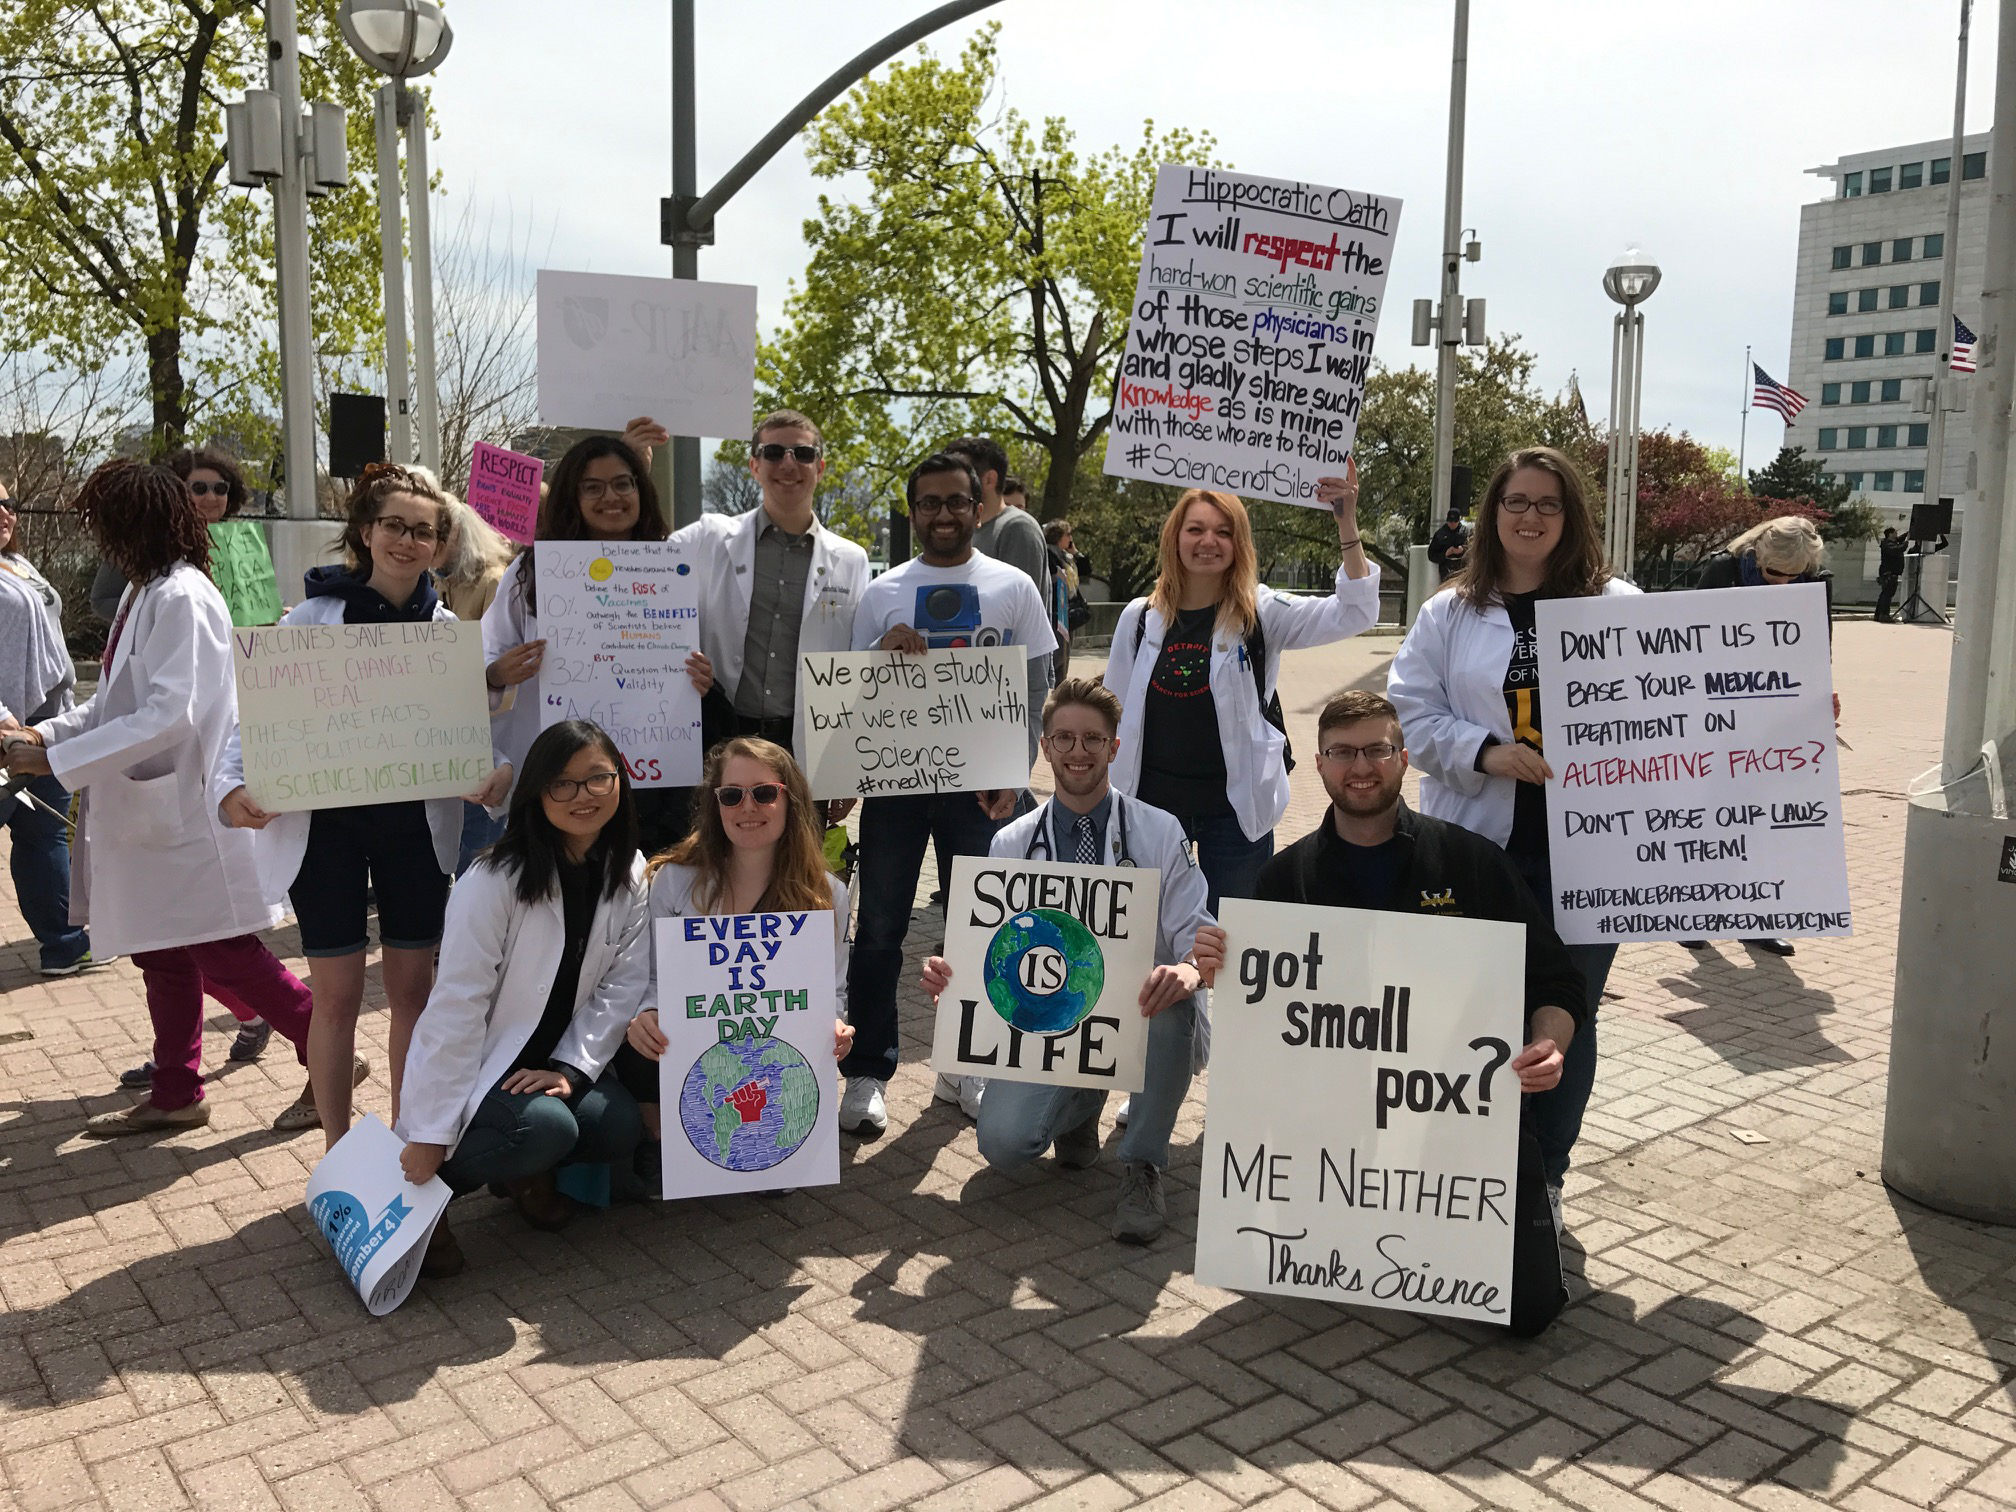 APRIL 2017 ETROIT MARCH FOR SCIENCE. Our members joined scientists, doctors, students and citizens that believe in Science. And beleieve that good science, peer-reviewed science, bfact-based science, should be used when creating legistlation for our country.